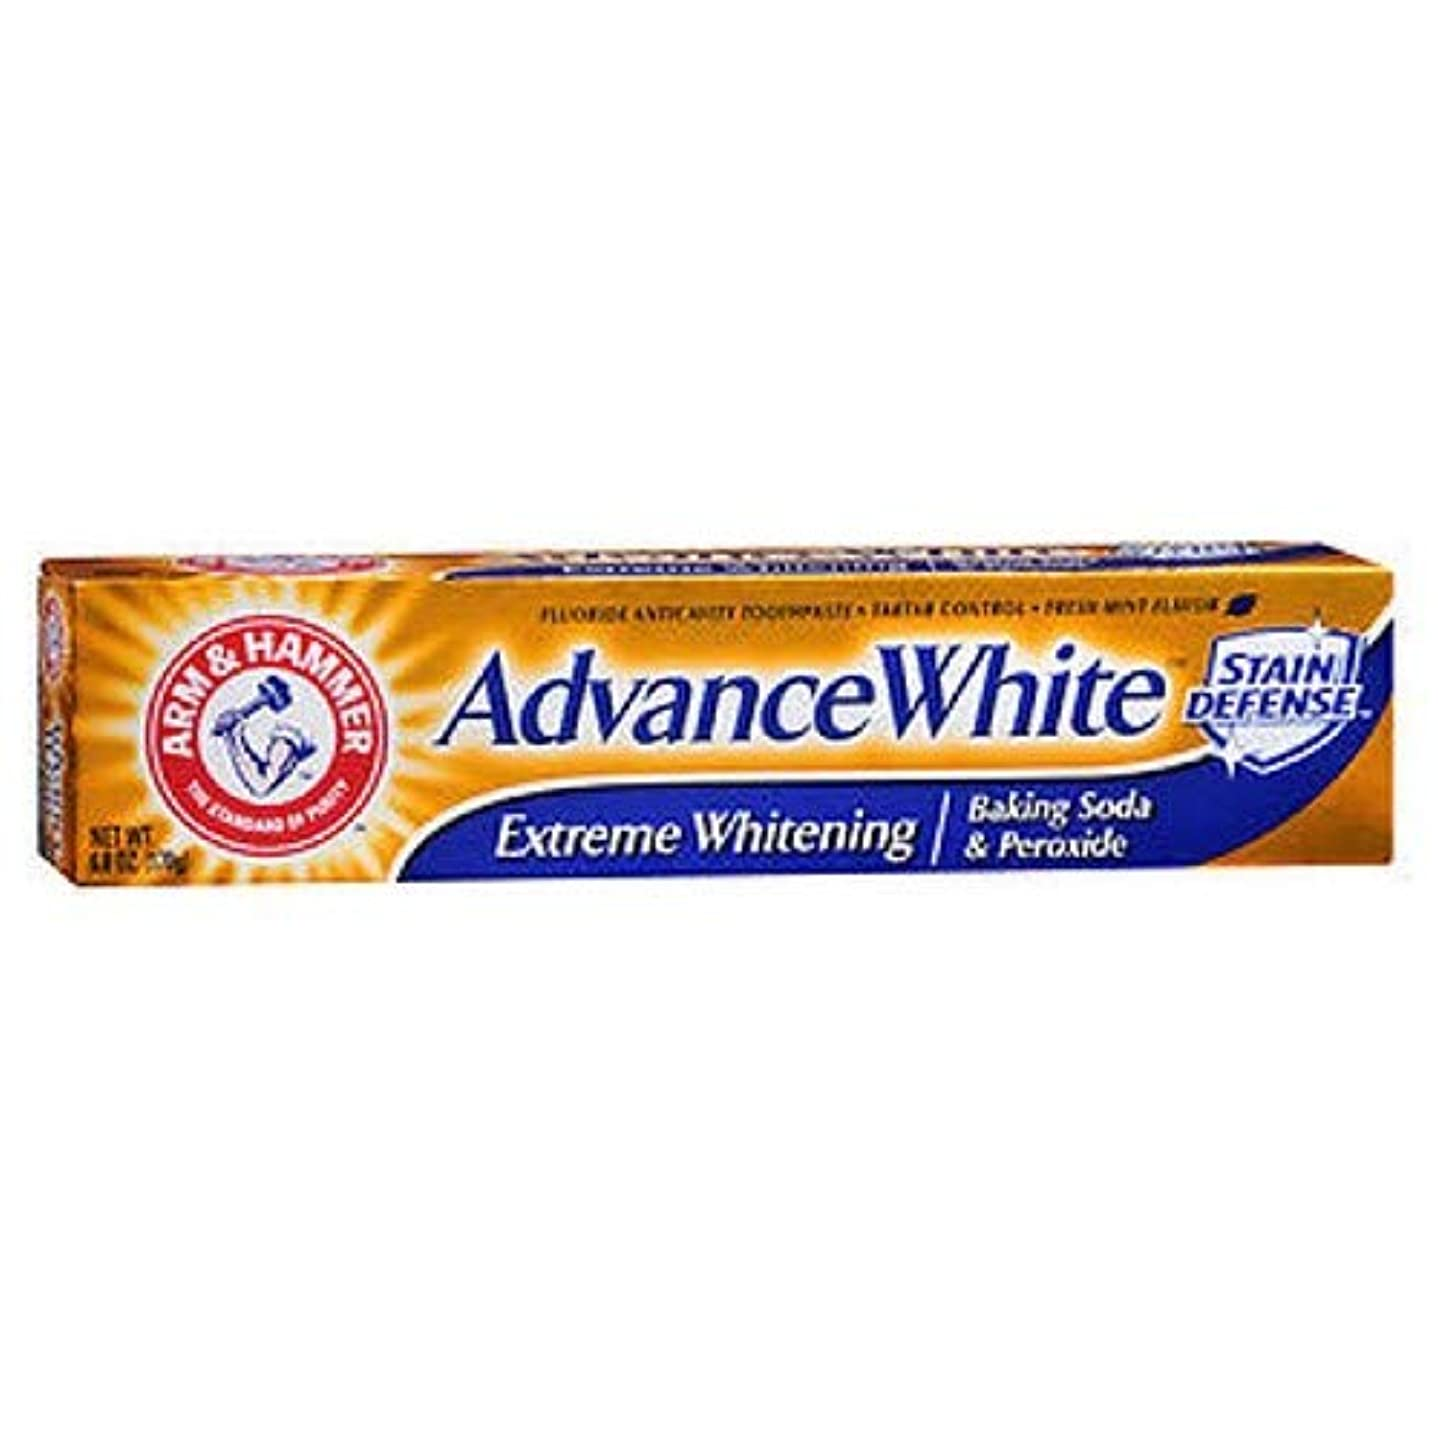 重要な番目ジャグリング海外直送品Arm & Hammer Arm & Hammer Advance White Fluoride Toothpaste Baking Soda And Peroxide, Baking Soda And Peroxide...